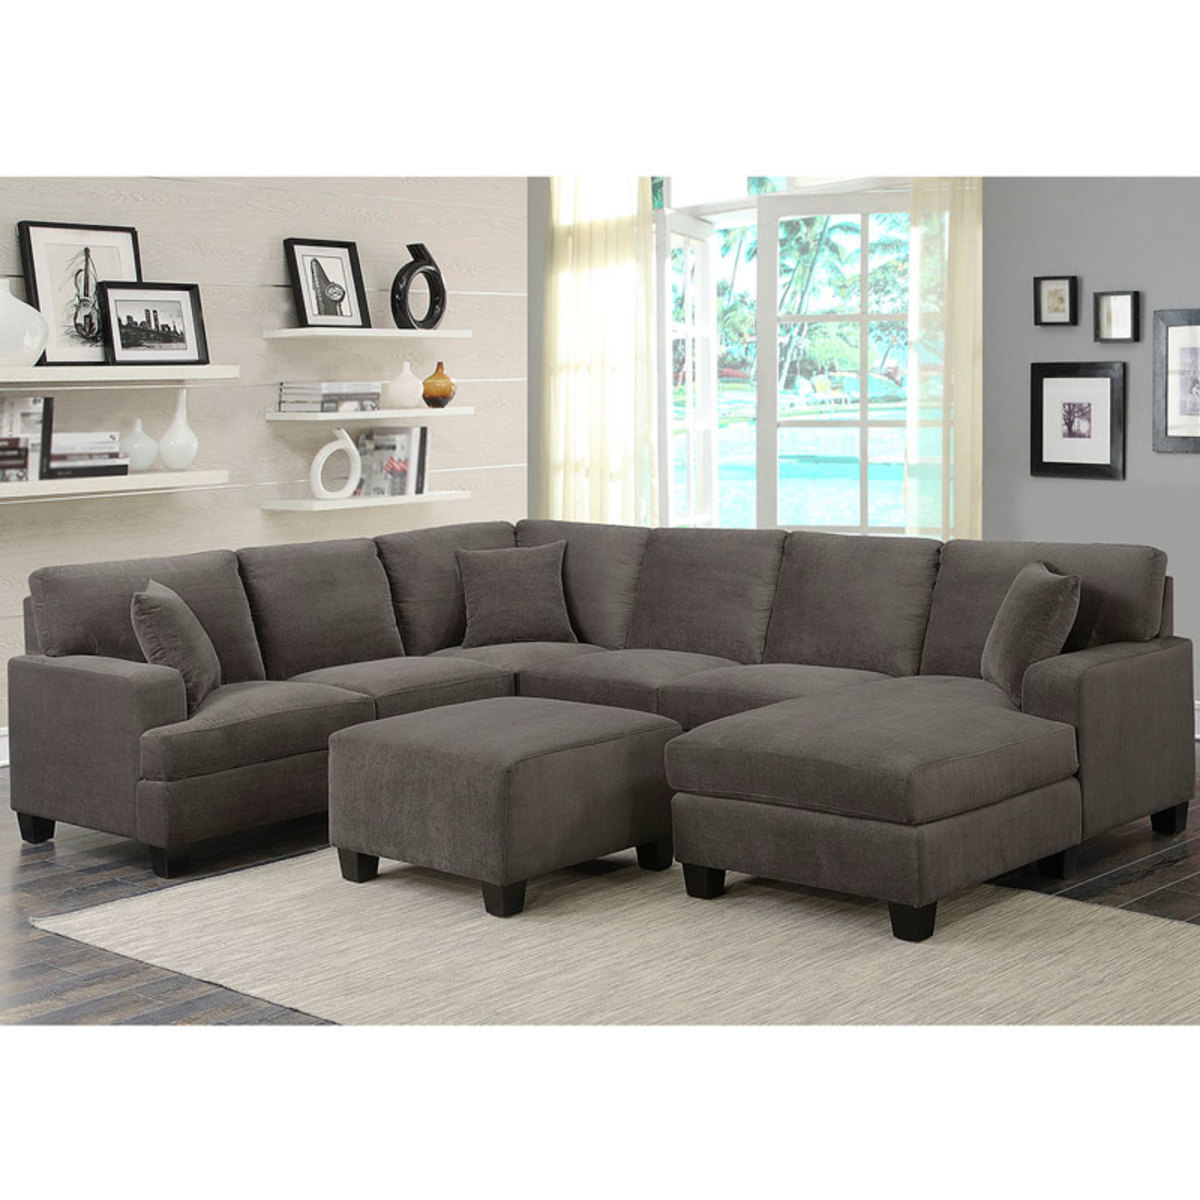 sectional rooms reina gray leather point contemporary products living piece sofa pc